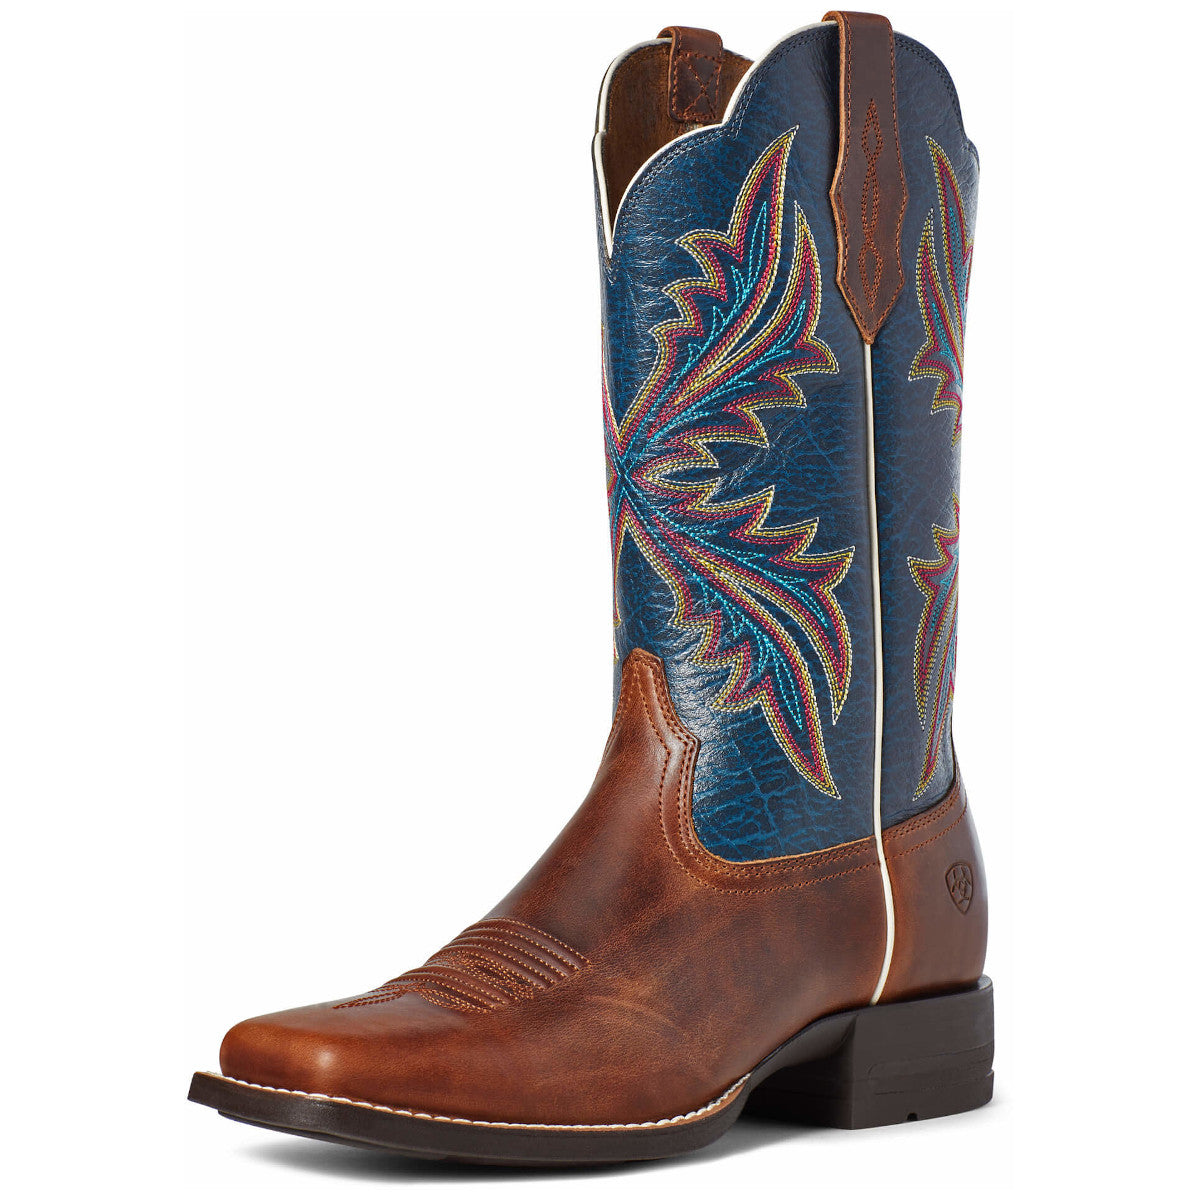 Ariat Women's Russet Rebel West Bound Cowgirl Boots